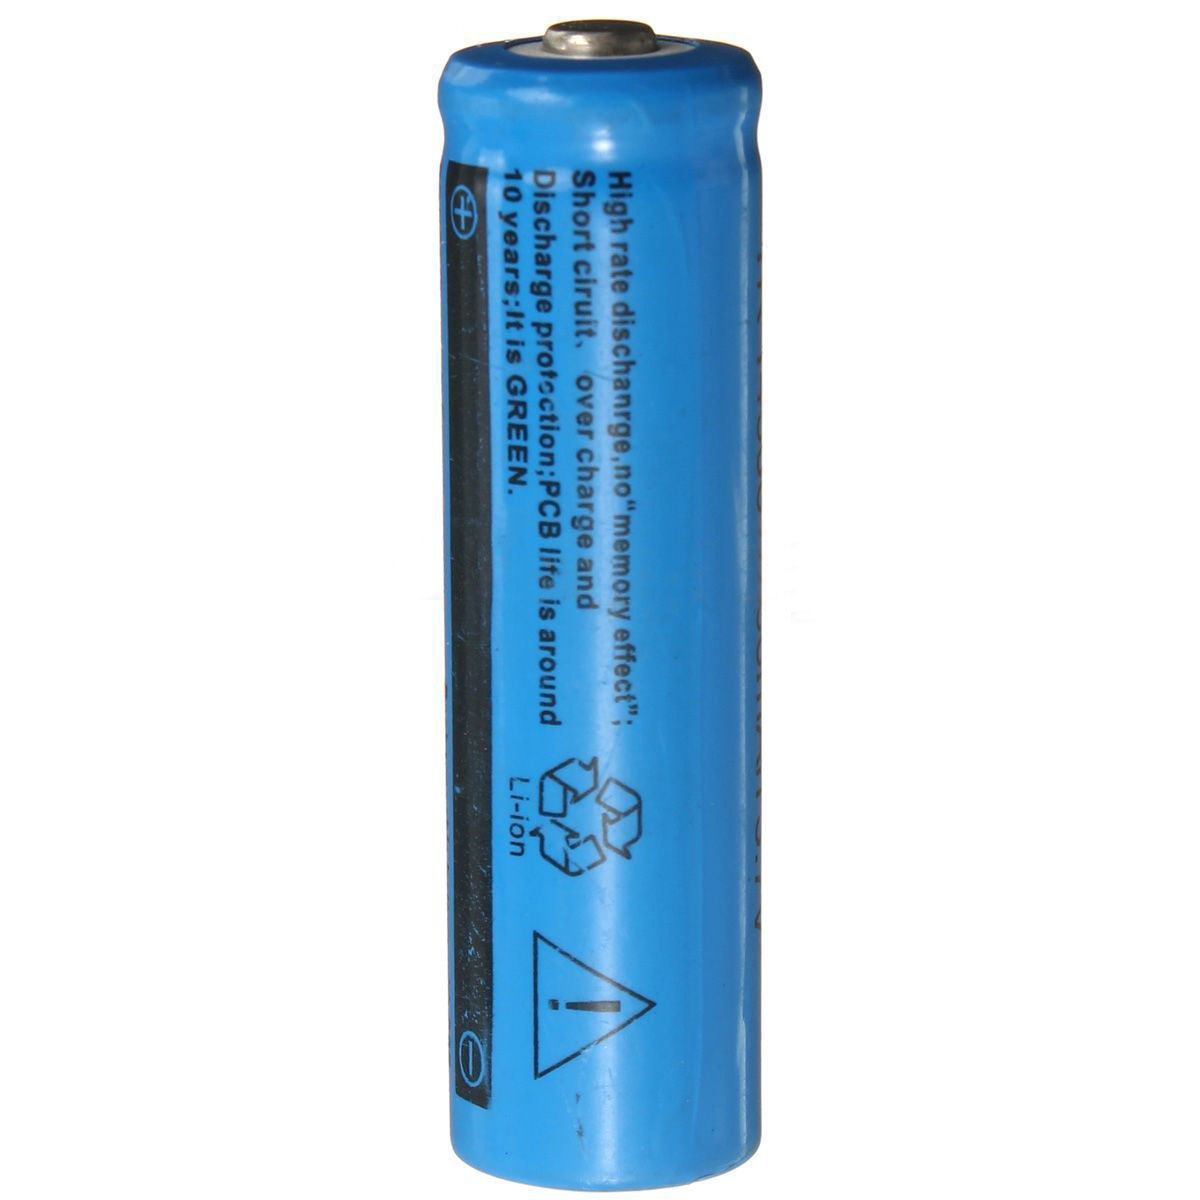 High Capacity <font><b>3.7V</b></font> 18650 <font><b>1000mAh</b></font> <font><b>Battery</b></font> Li Ion Rechargeable <font><b>Batteries</b></font> For Flashlight source image